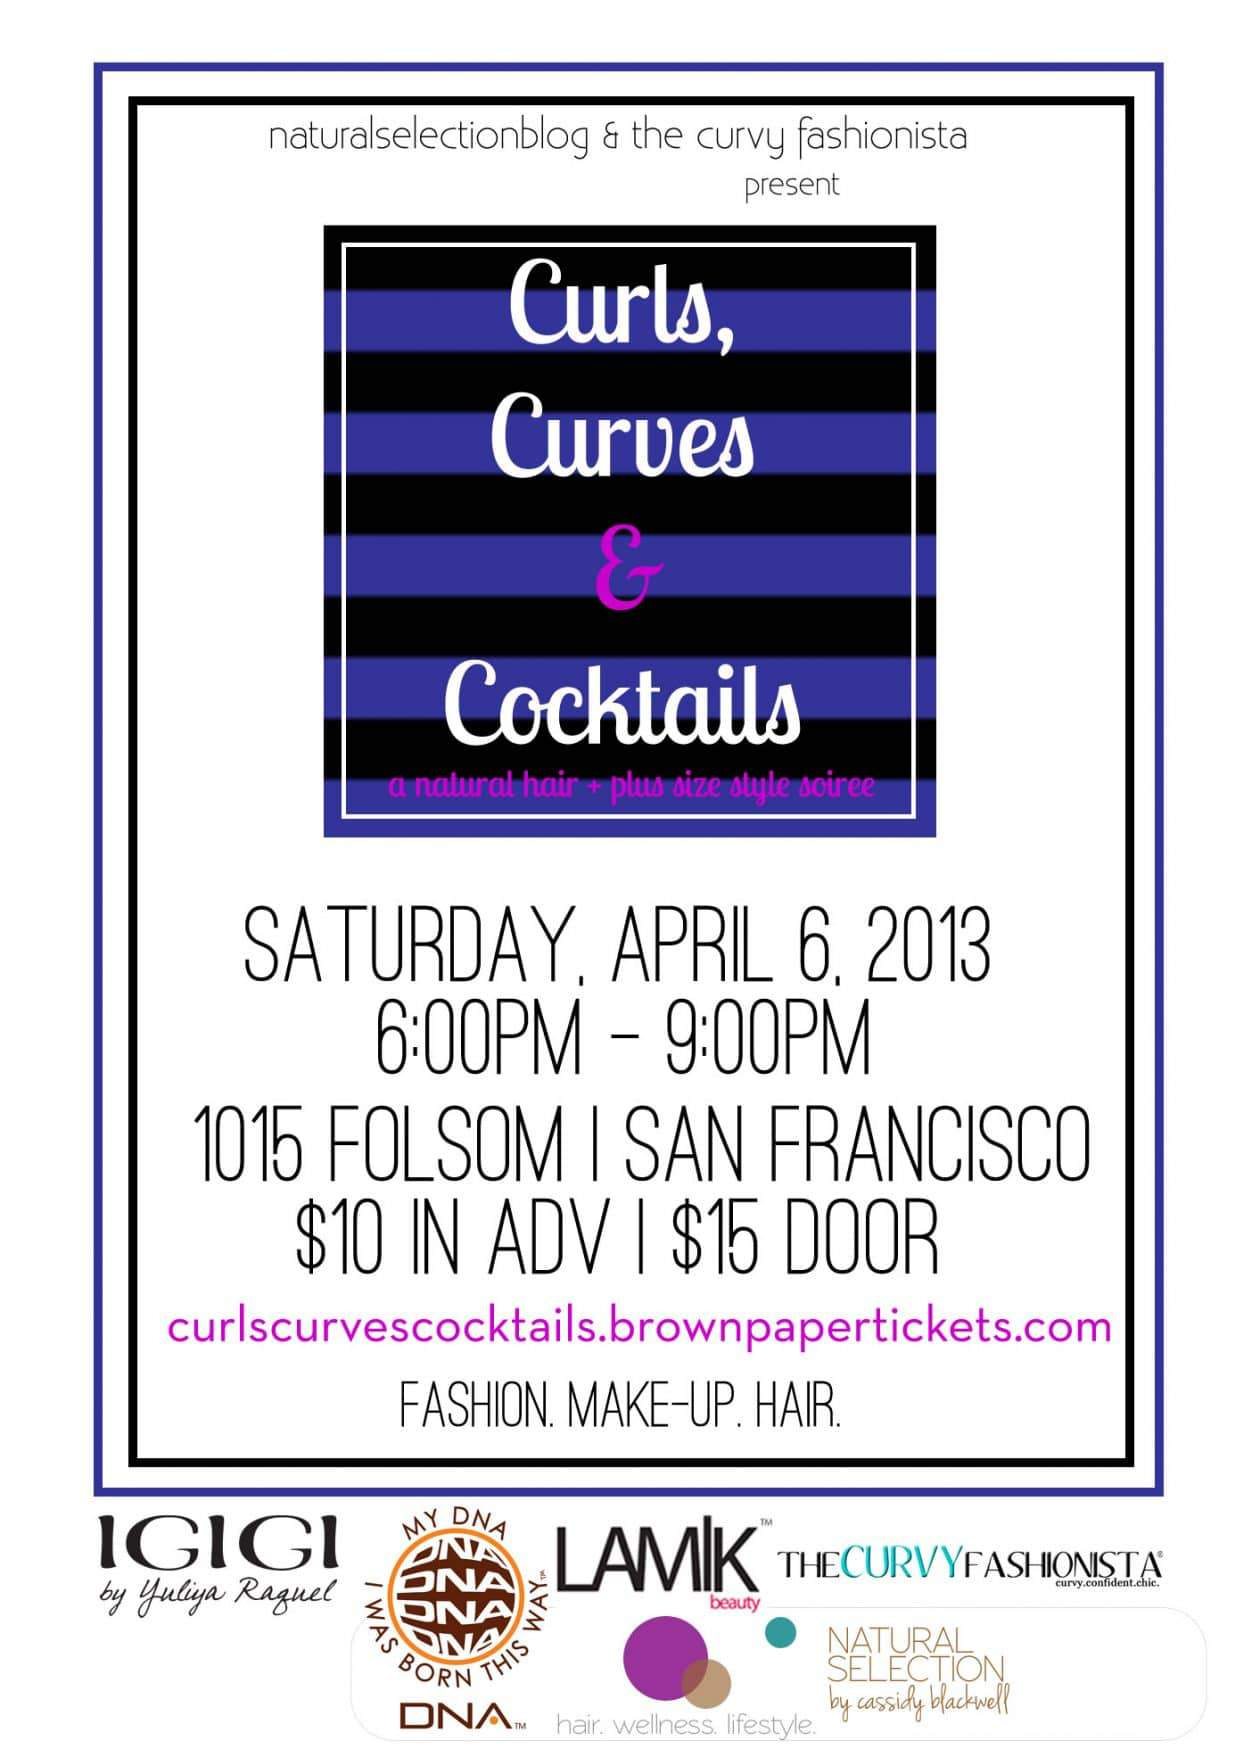 The Curvy Fashionista and Natural Selection present CURLS CURVES COCKTAILS